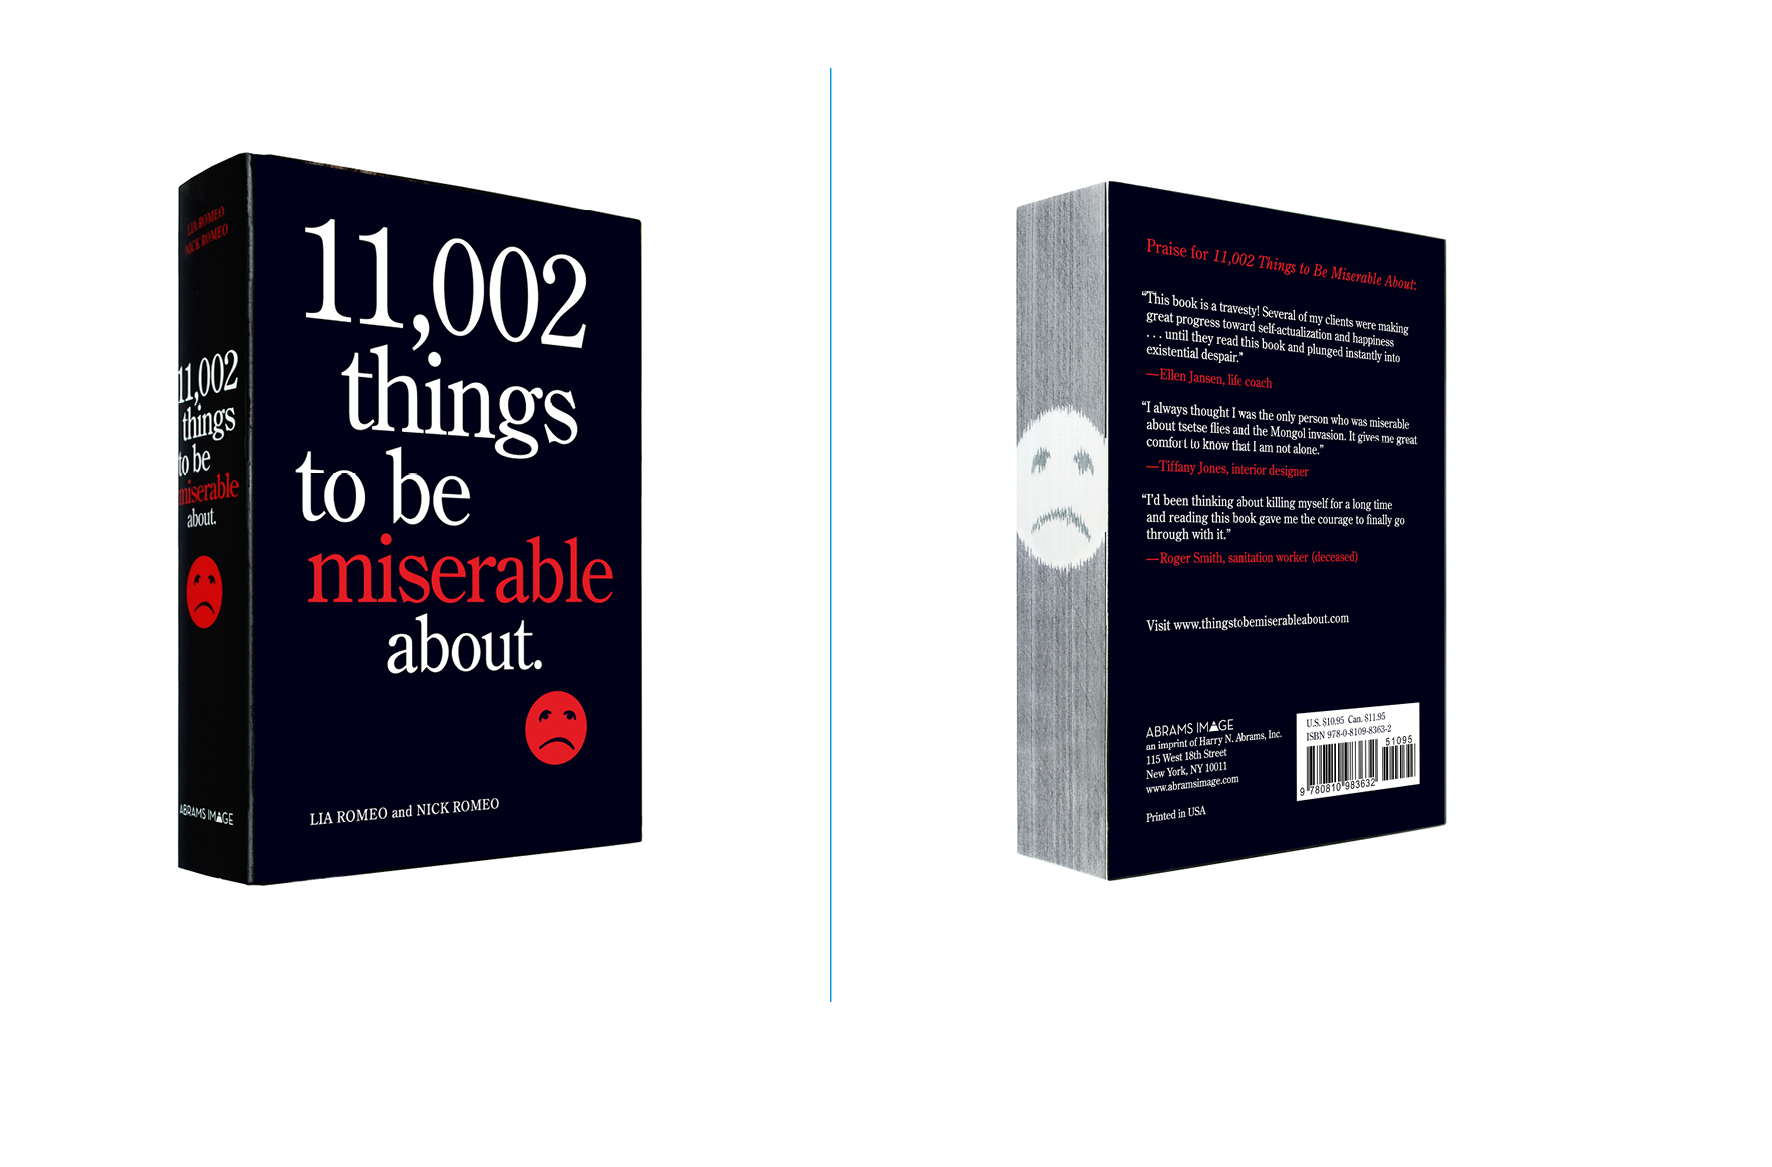 11,002 Things to Be Miserable About -  4 X 6 in., 448 pg., paperback with trim edge graphic. Design; Galen Smith, Liam Flanagan // Publisher; Abrams Image